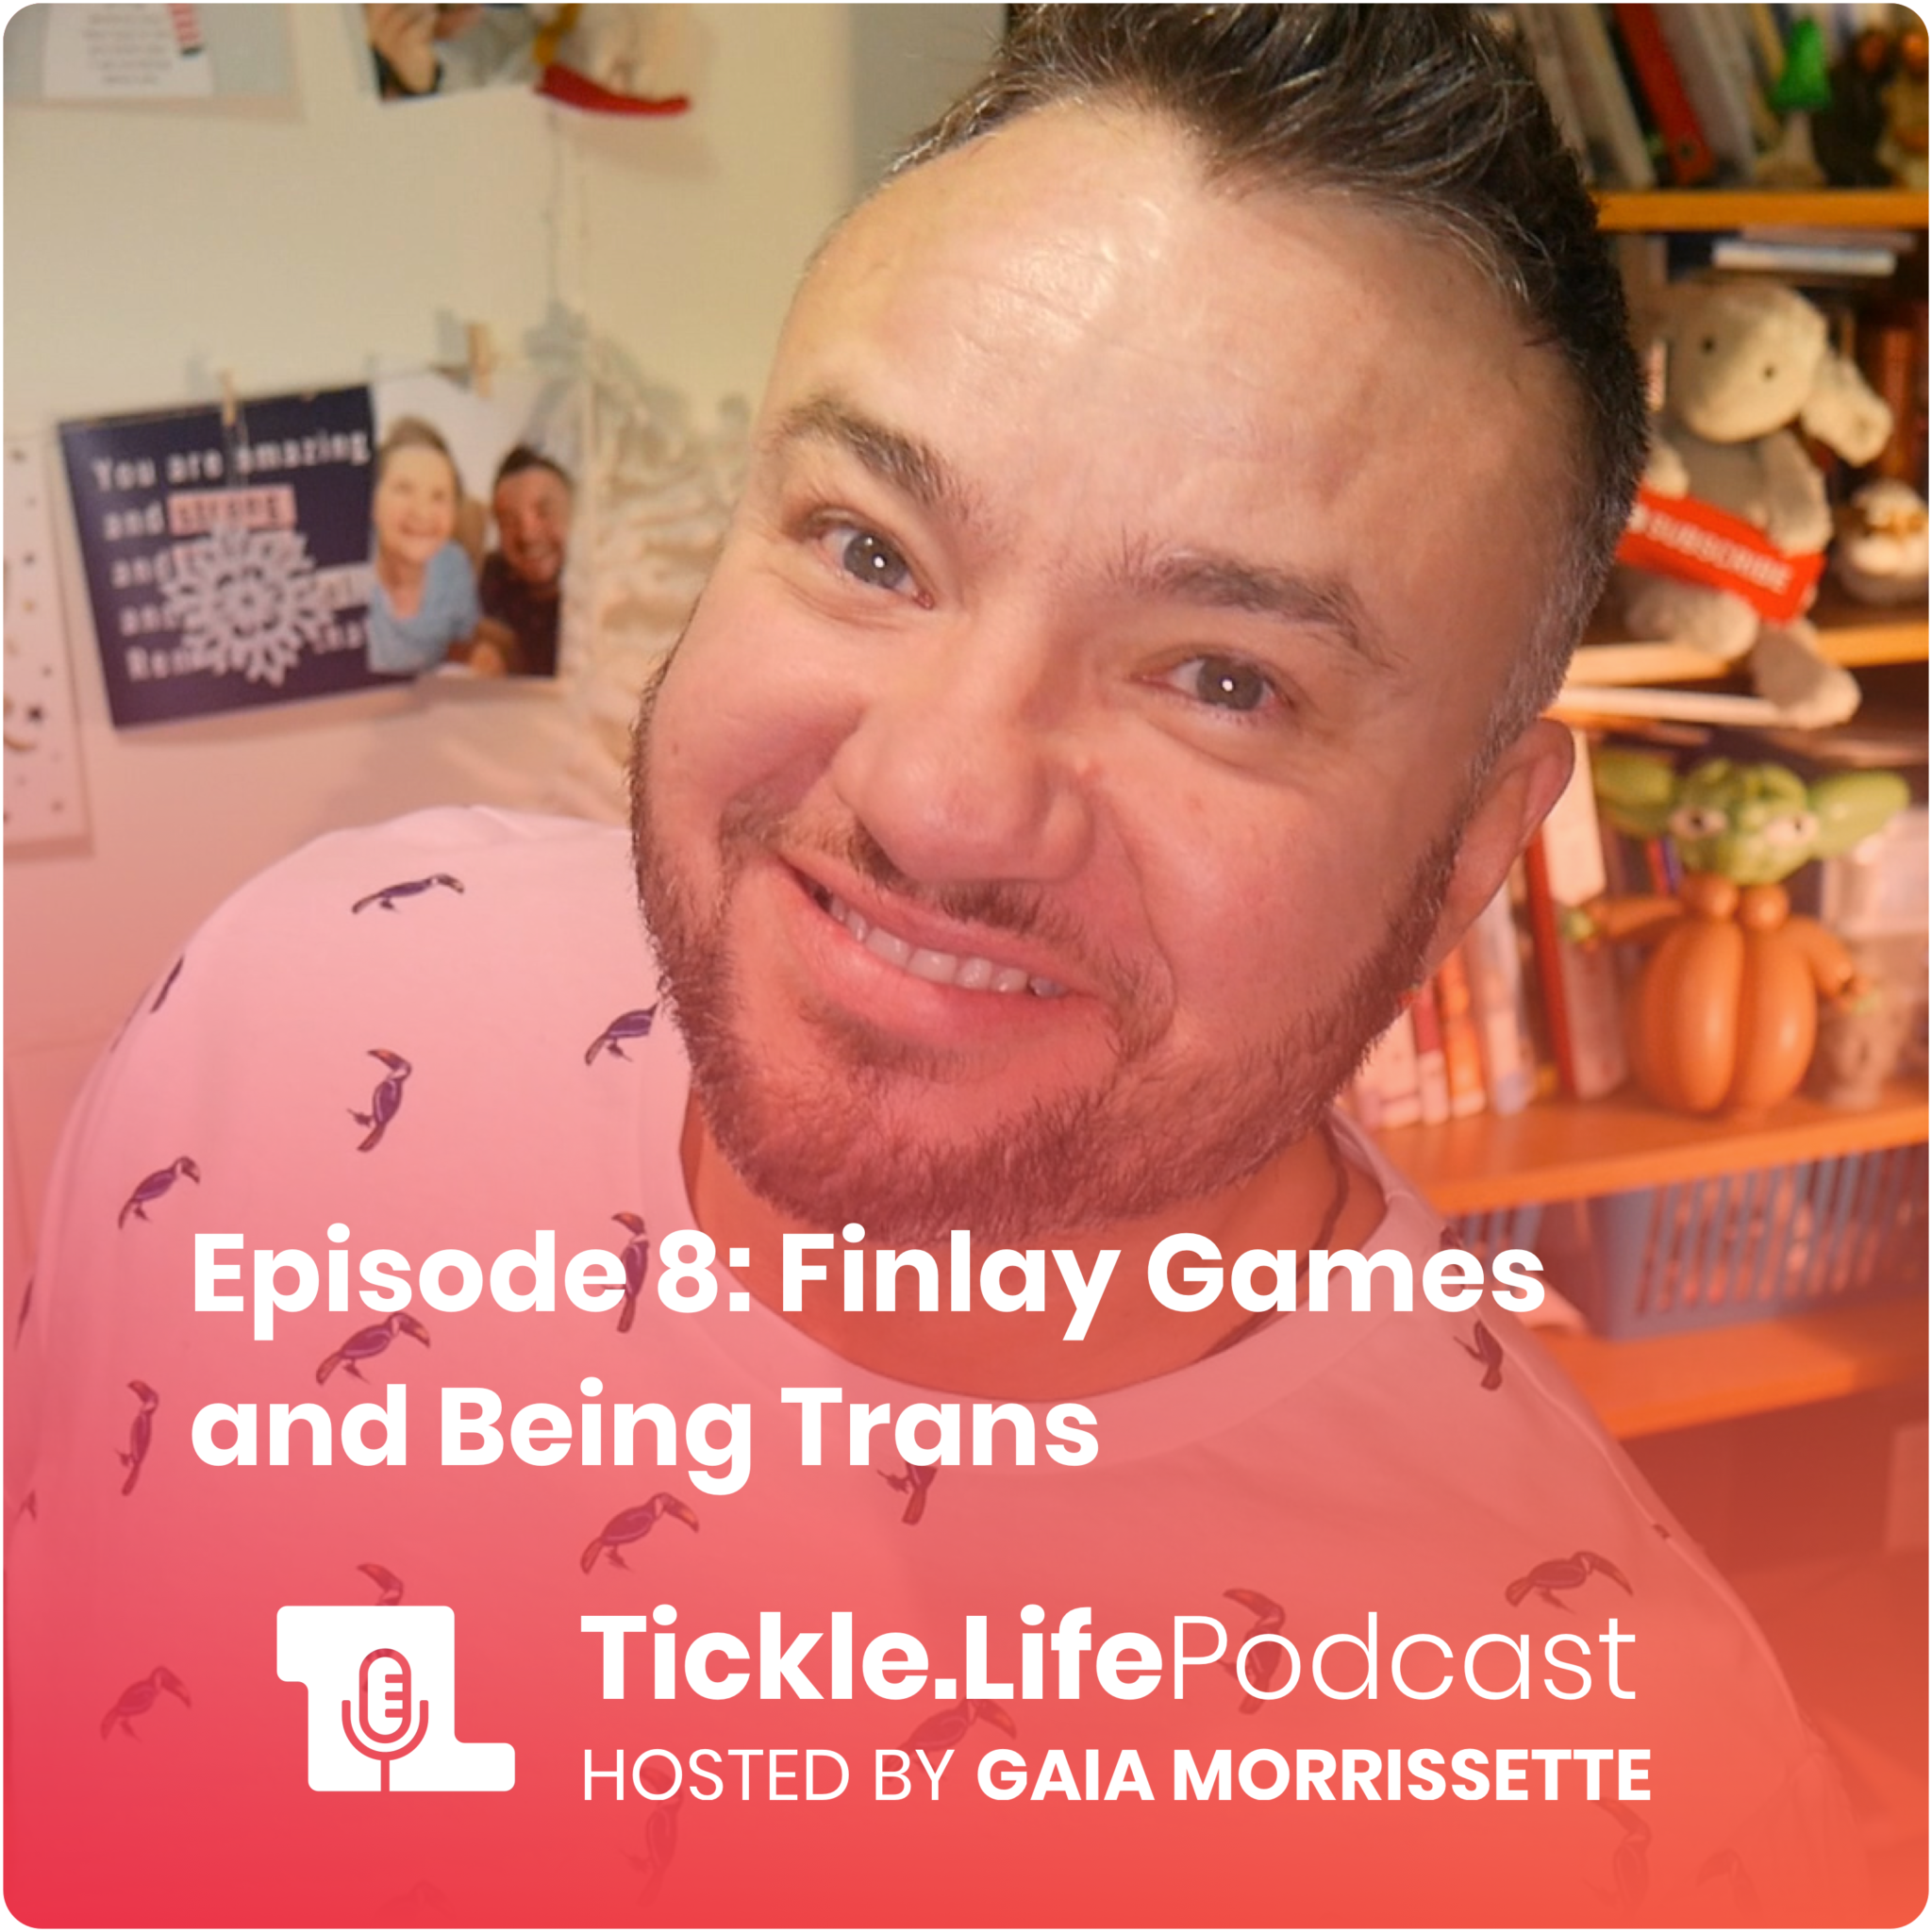 - Finlay Games and Being Trans